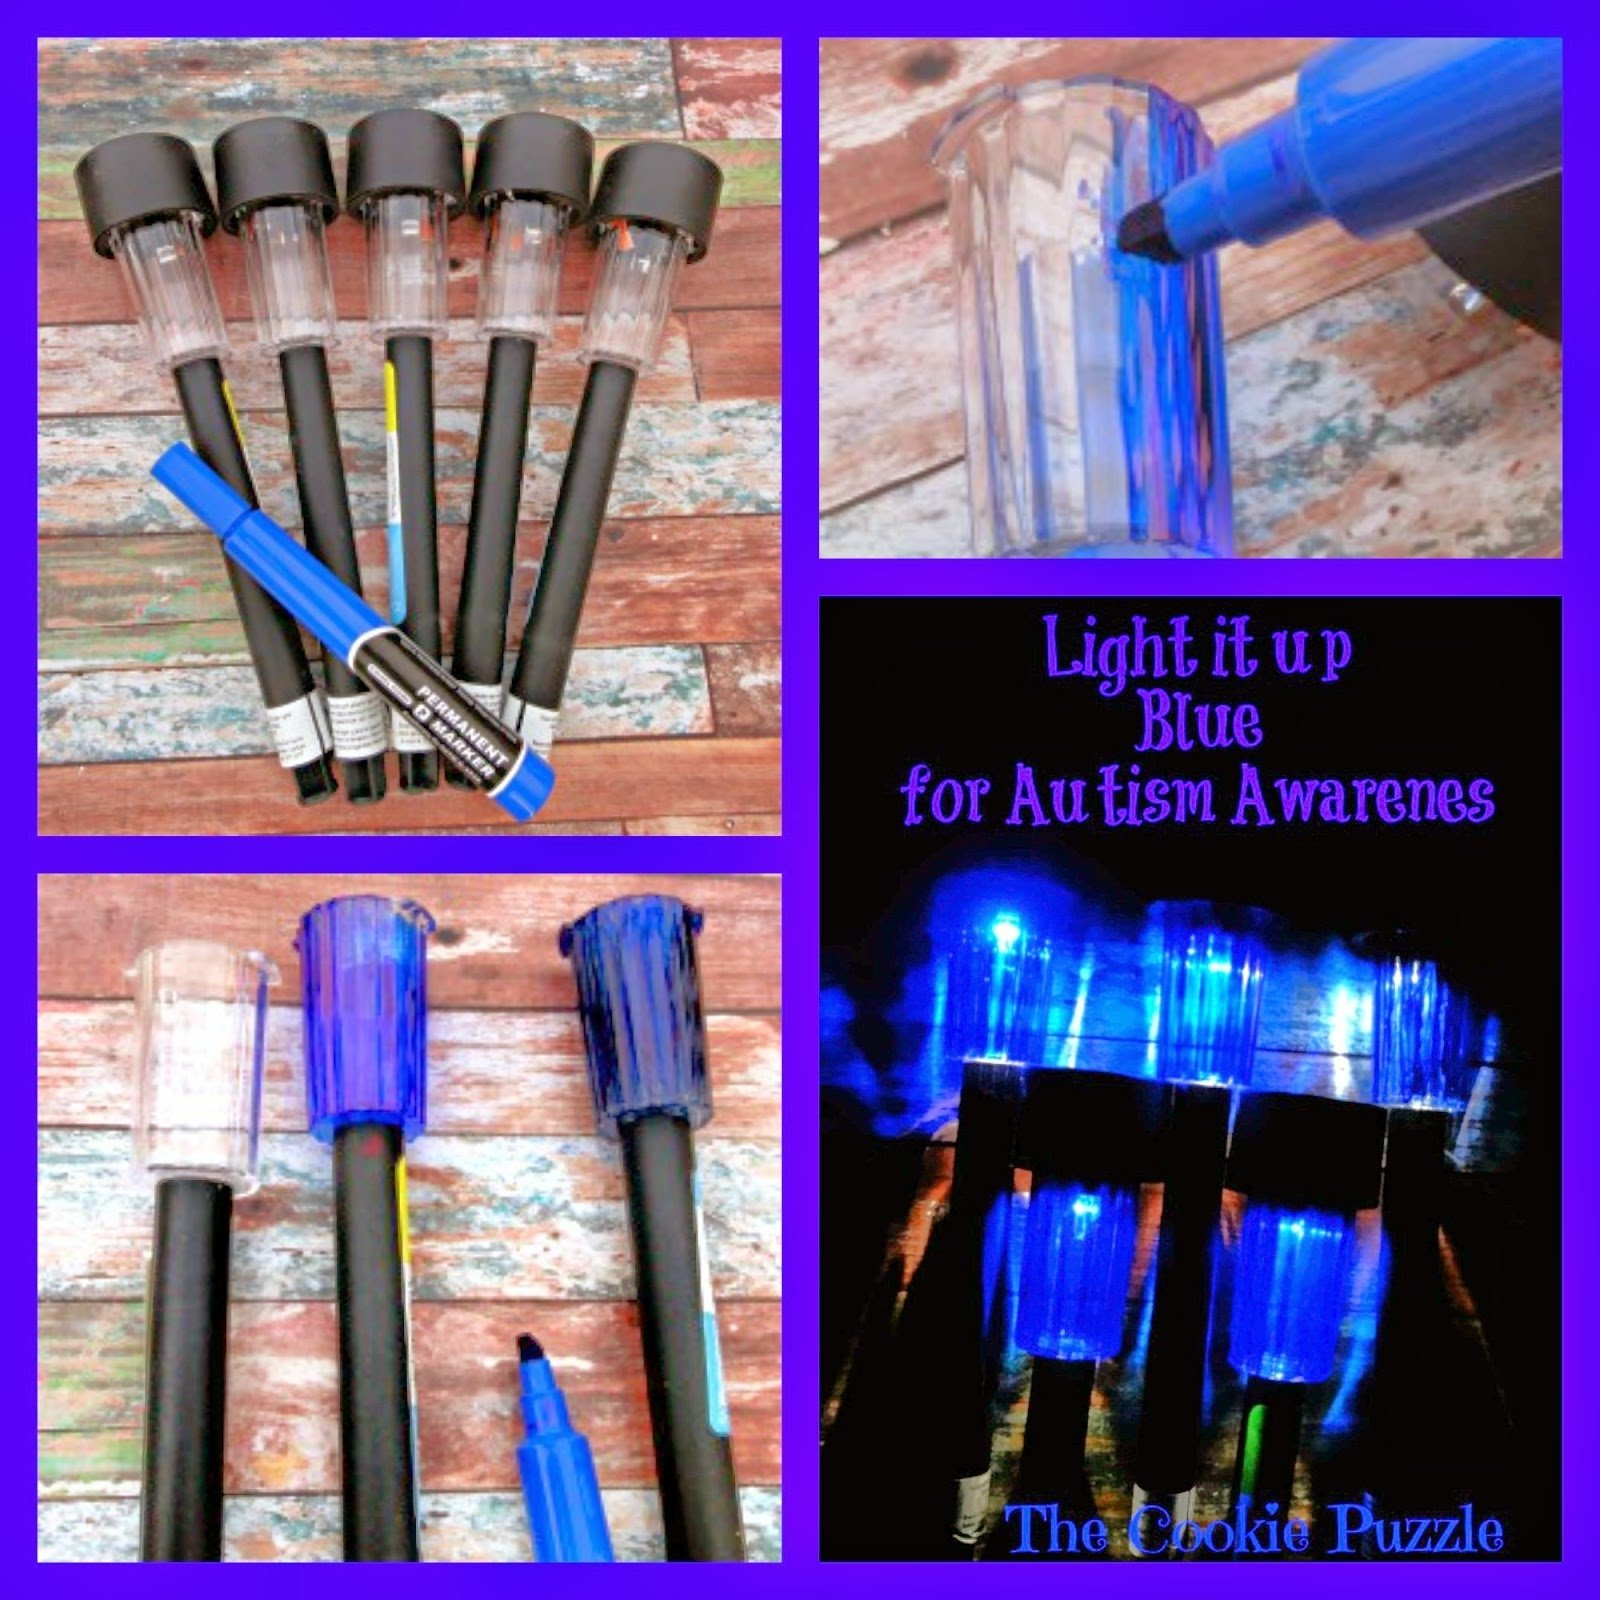 the cookie puzzle: light it up blue for autism awareness - simple